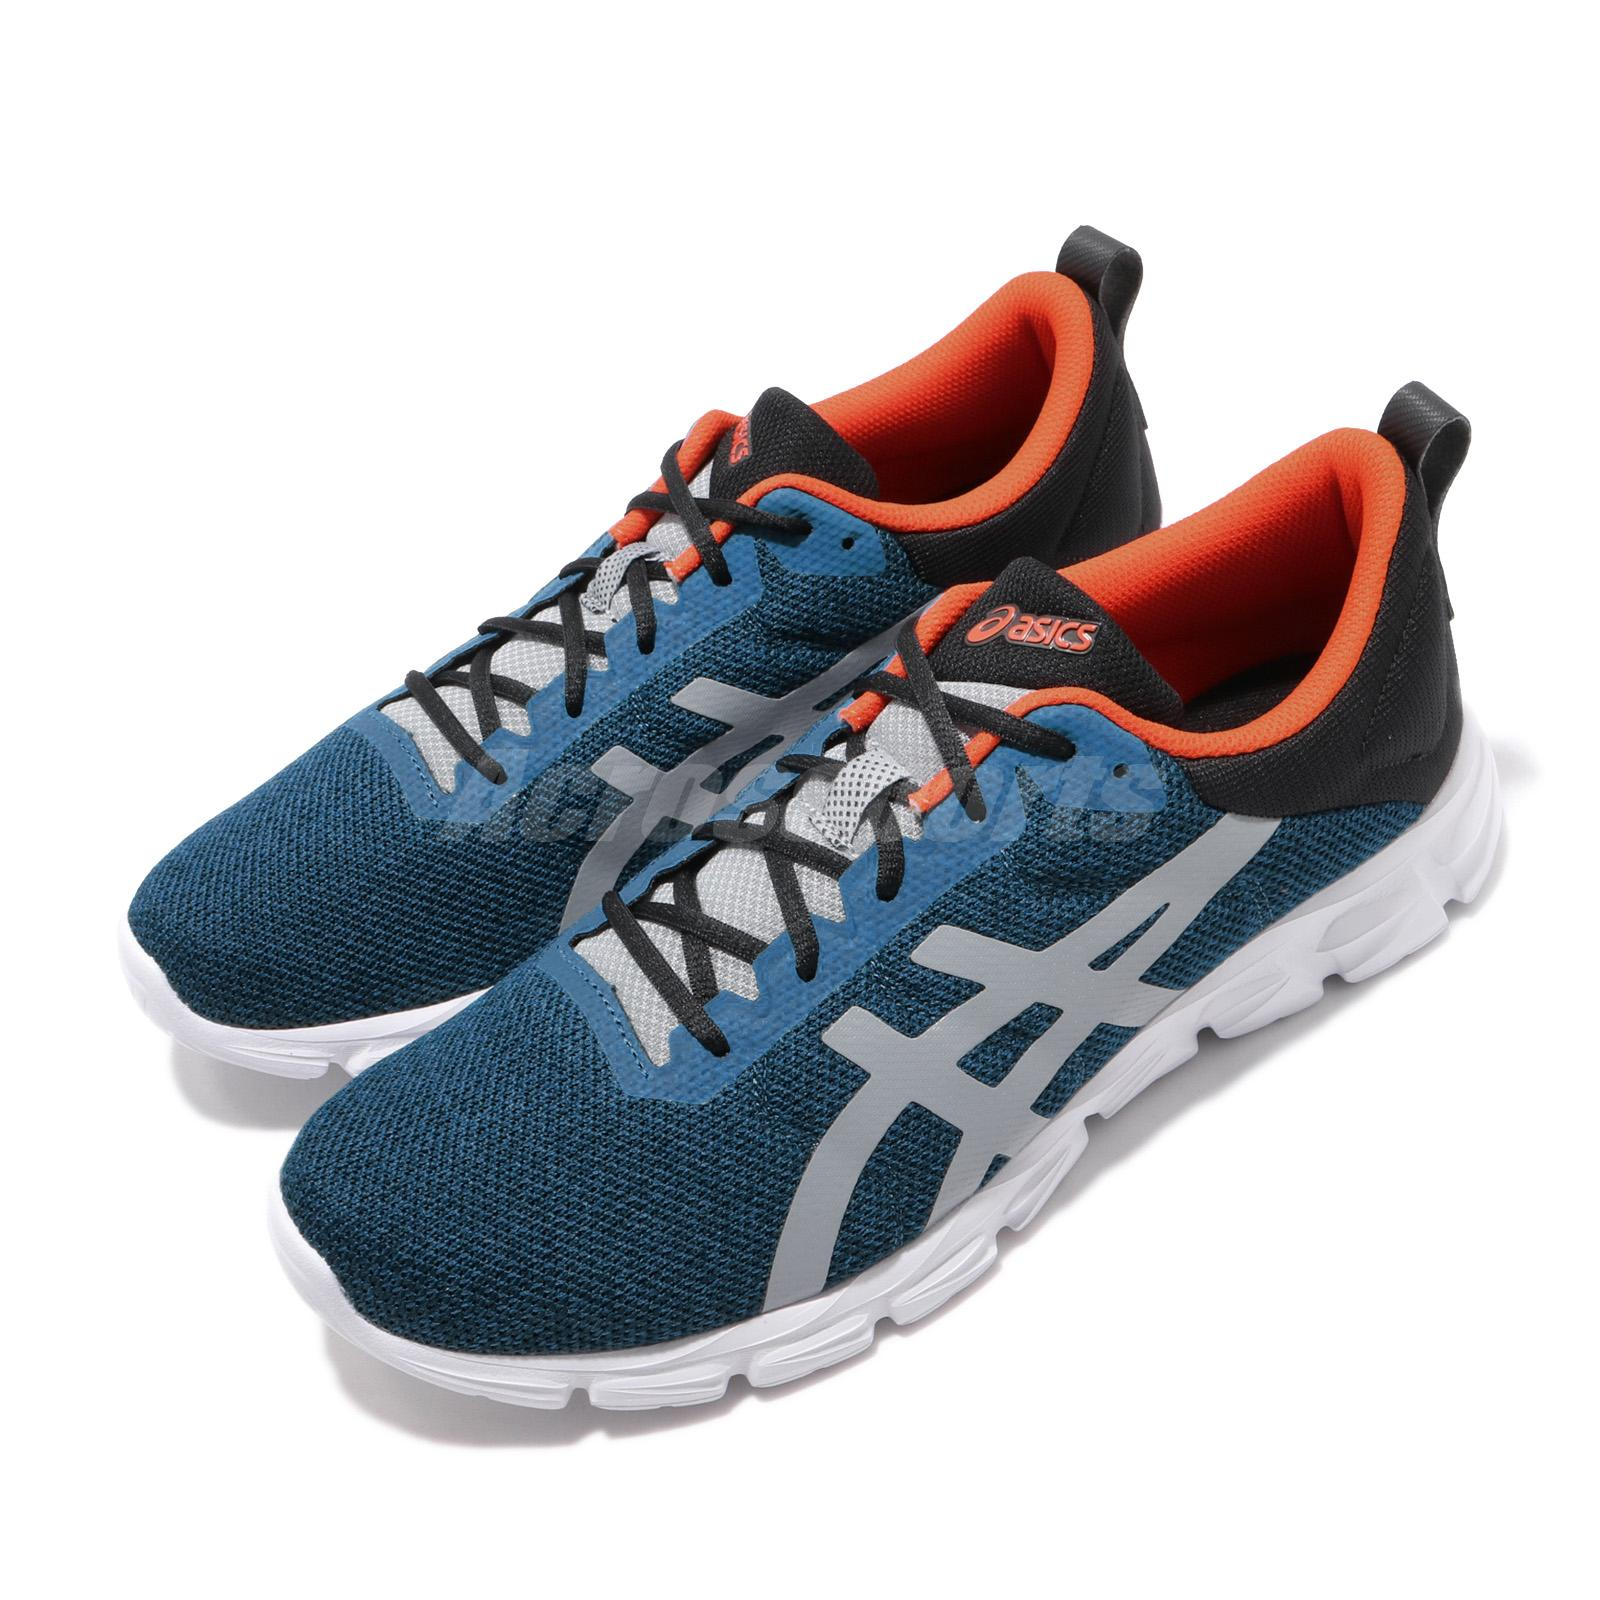 new style 23986 38276 Details about Asics Gel-Quantum Lyte Mako Blue Orange White Men Running  Shoes 1021A116-400